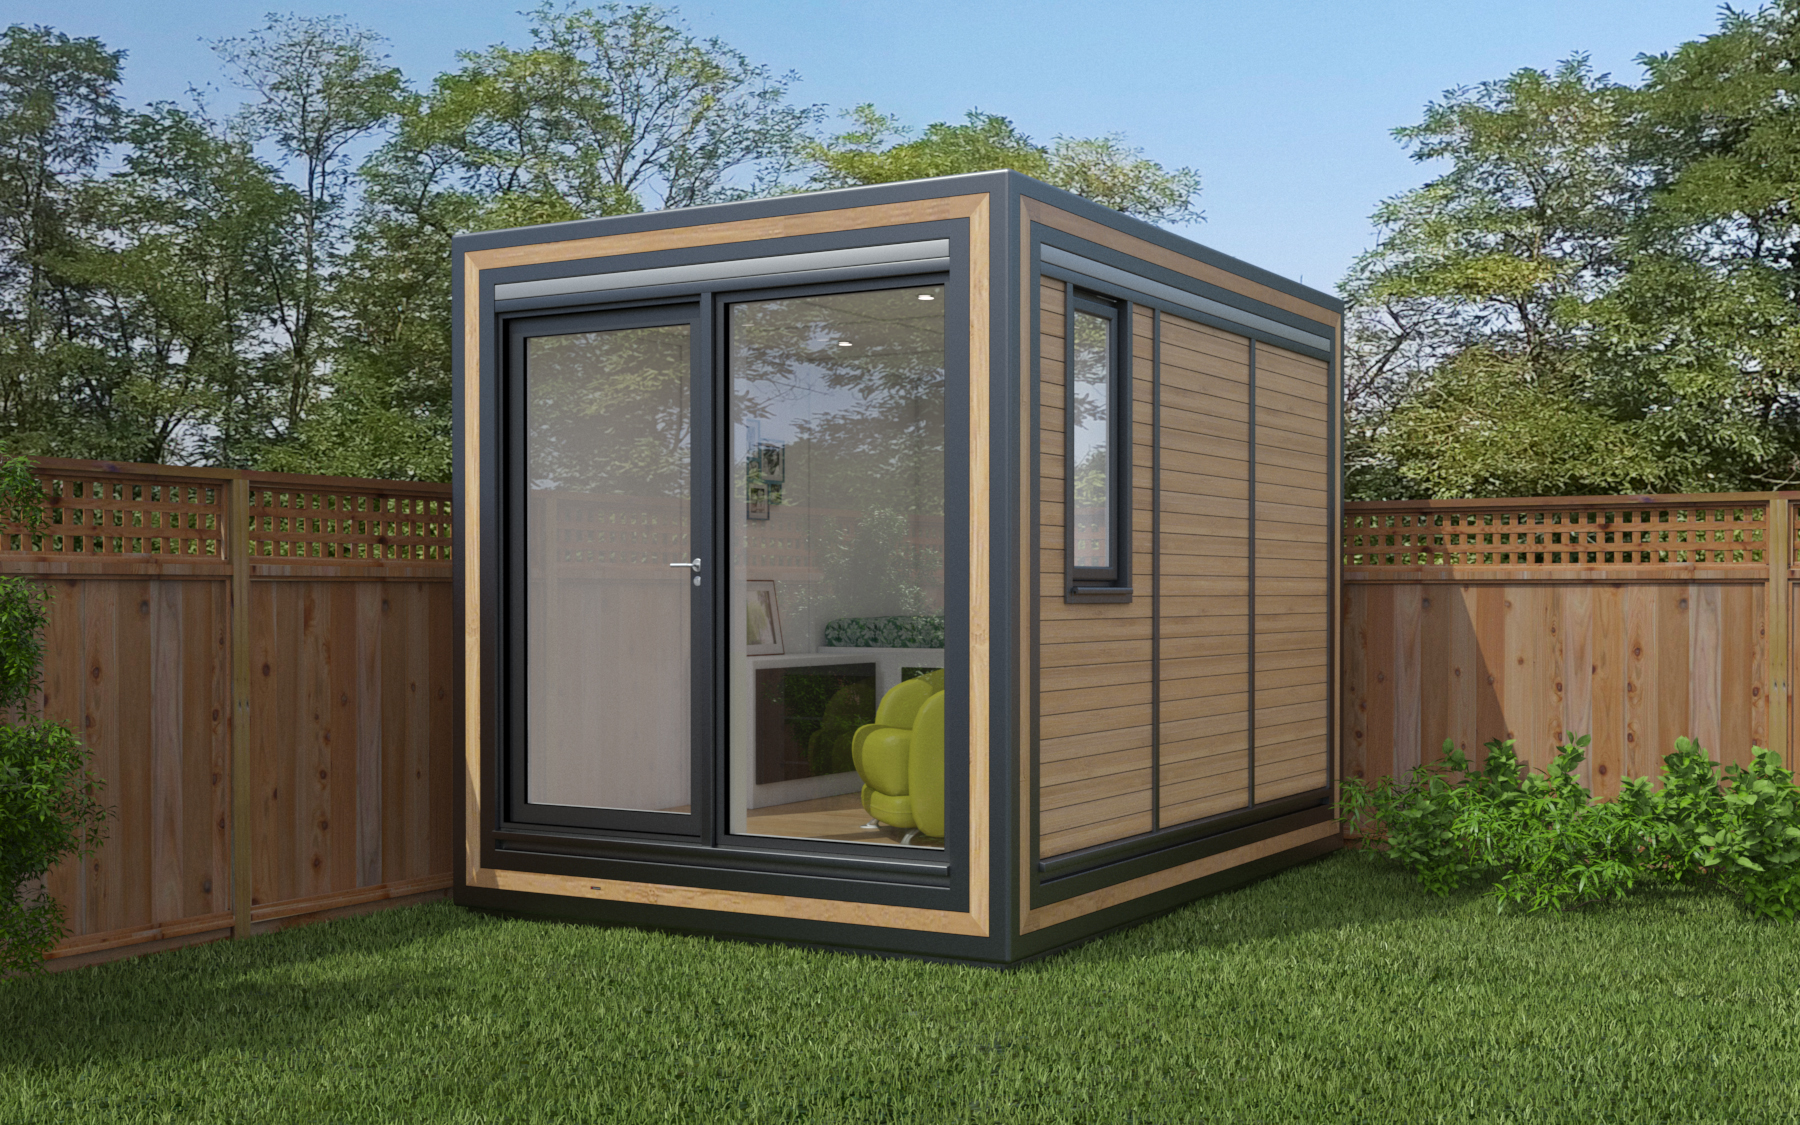 ZEDBOX 230  (2 x 3)  Internal Size: 2117 x 3188  External Size: 2587 x 3658  Bed Options: Single  Kitchen Options: N/A  Wet Room Options: Yes  Portico: No  Price:  £16,000    Optional Extras    Request Zedbox Catalogue